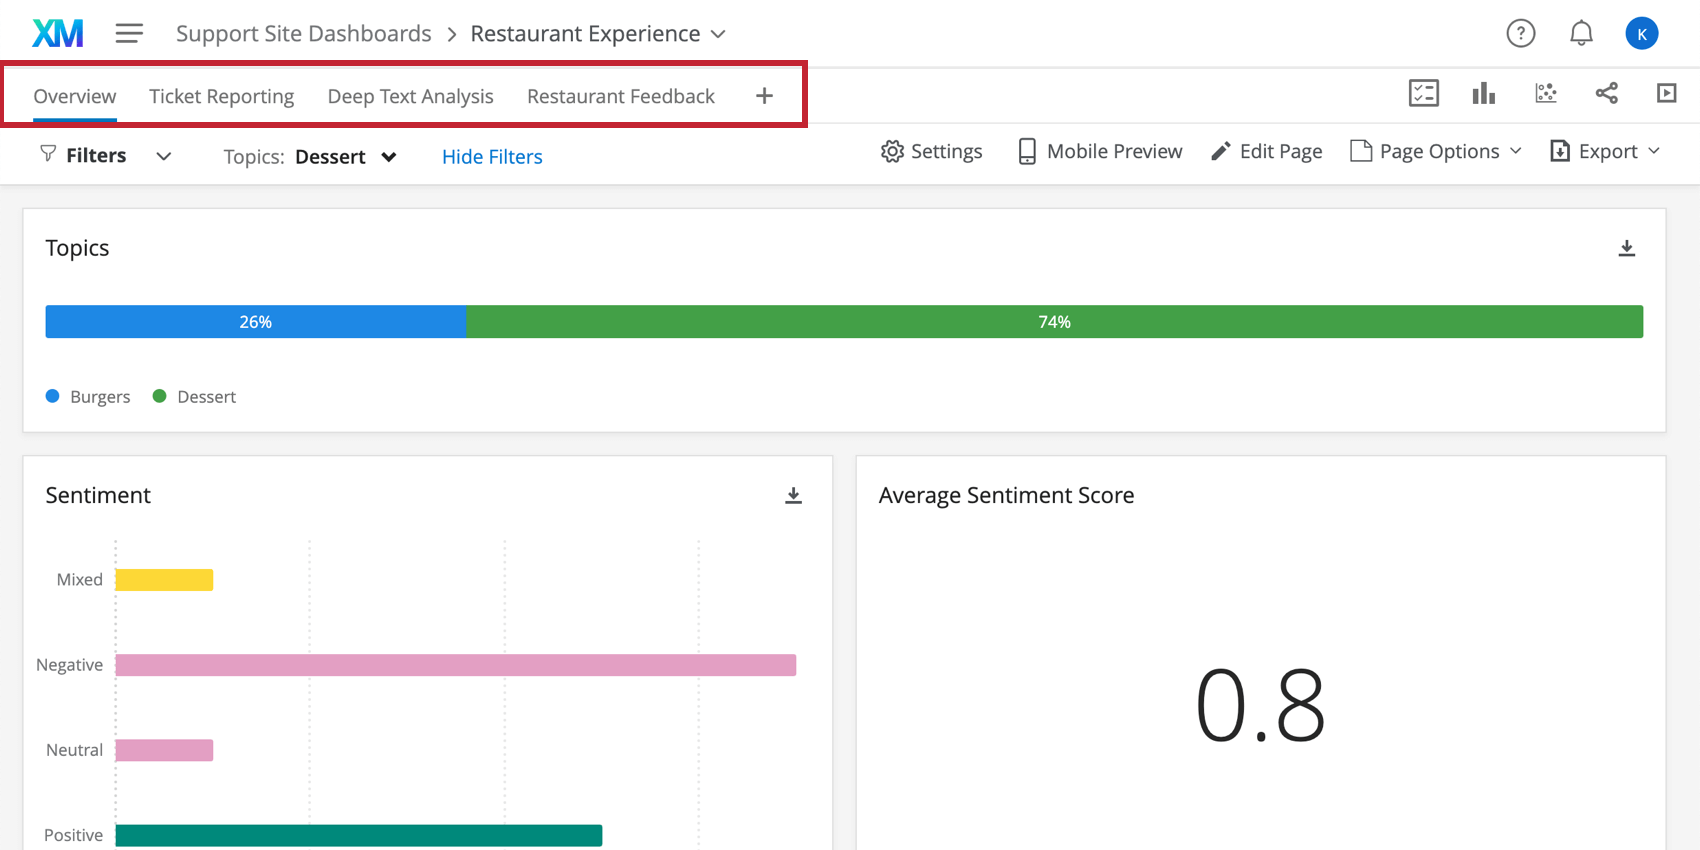 Image of a dashboard where the pages are listed along the top